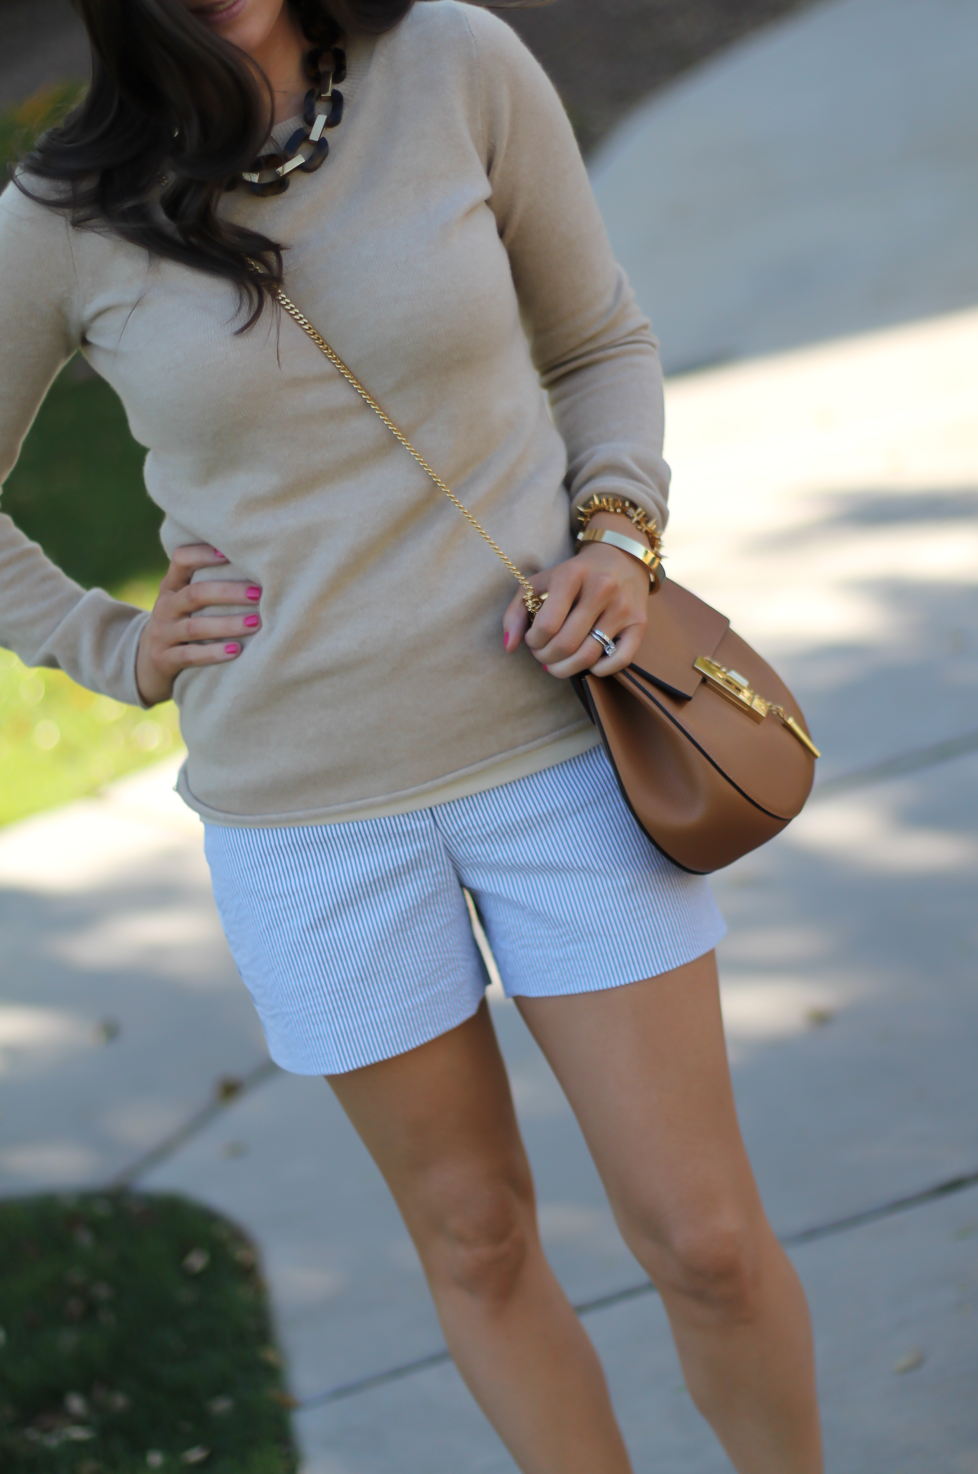 Seersucker Shorts, Tan Cashmere Sweater, Tan Leather Ankle Strap Heels, Tan Leather Chain Strap Bag, Ann Taylor, J.Crew, Steve Madden, Chloe  8